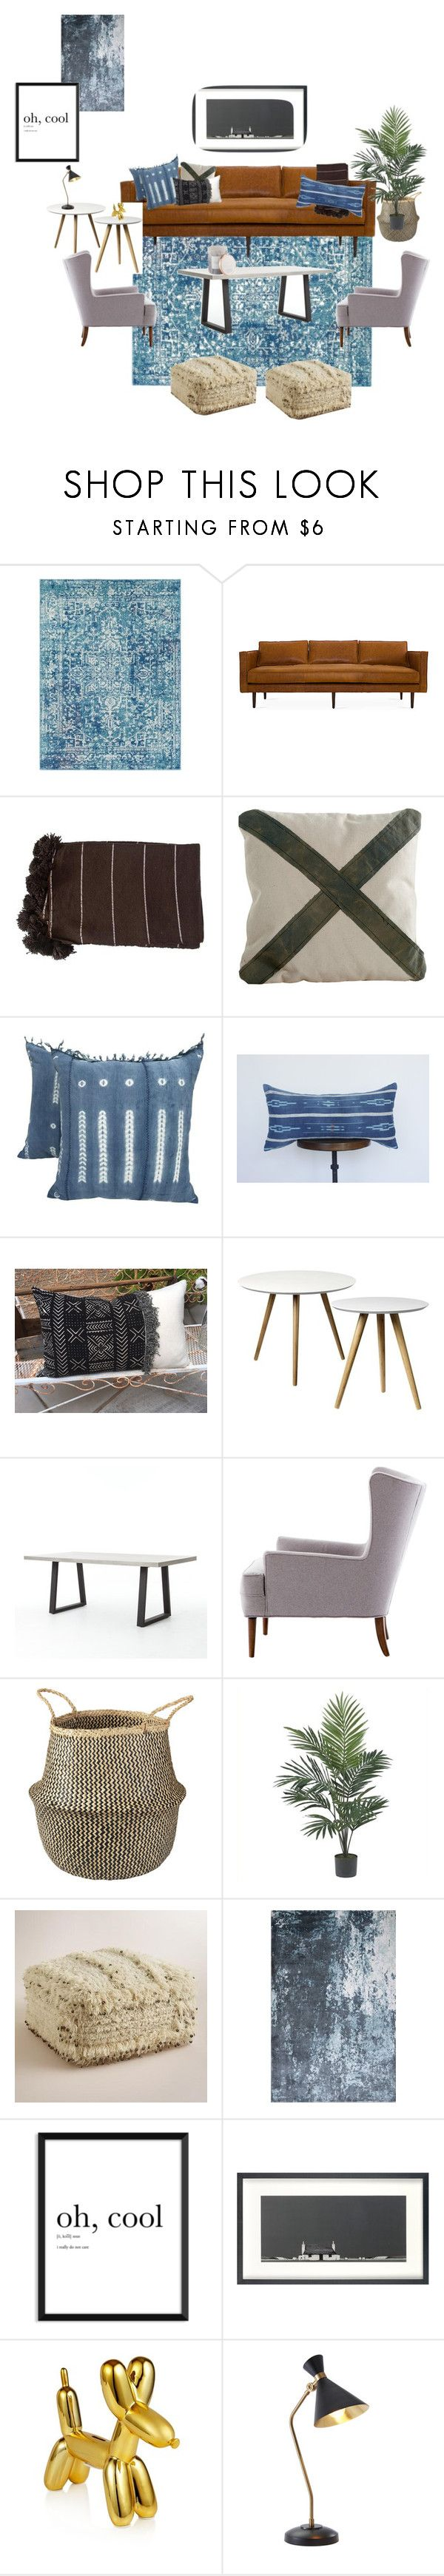 """Blue living"" by andreadavis2 on Polyvore featuring interior, interiors, interior design, home, home decor, interior decorating, Surya, Nearly Natural, Cost Plus World Market and John Lewis"